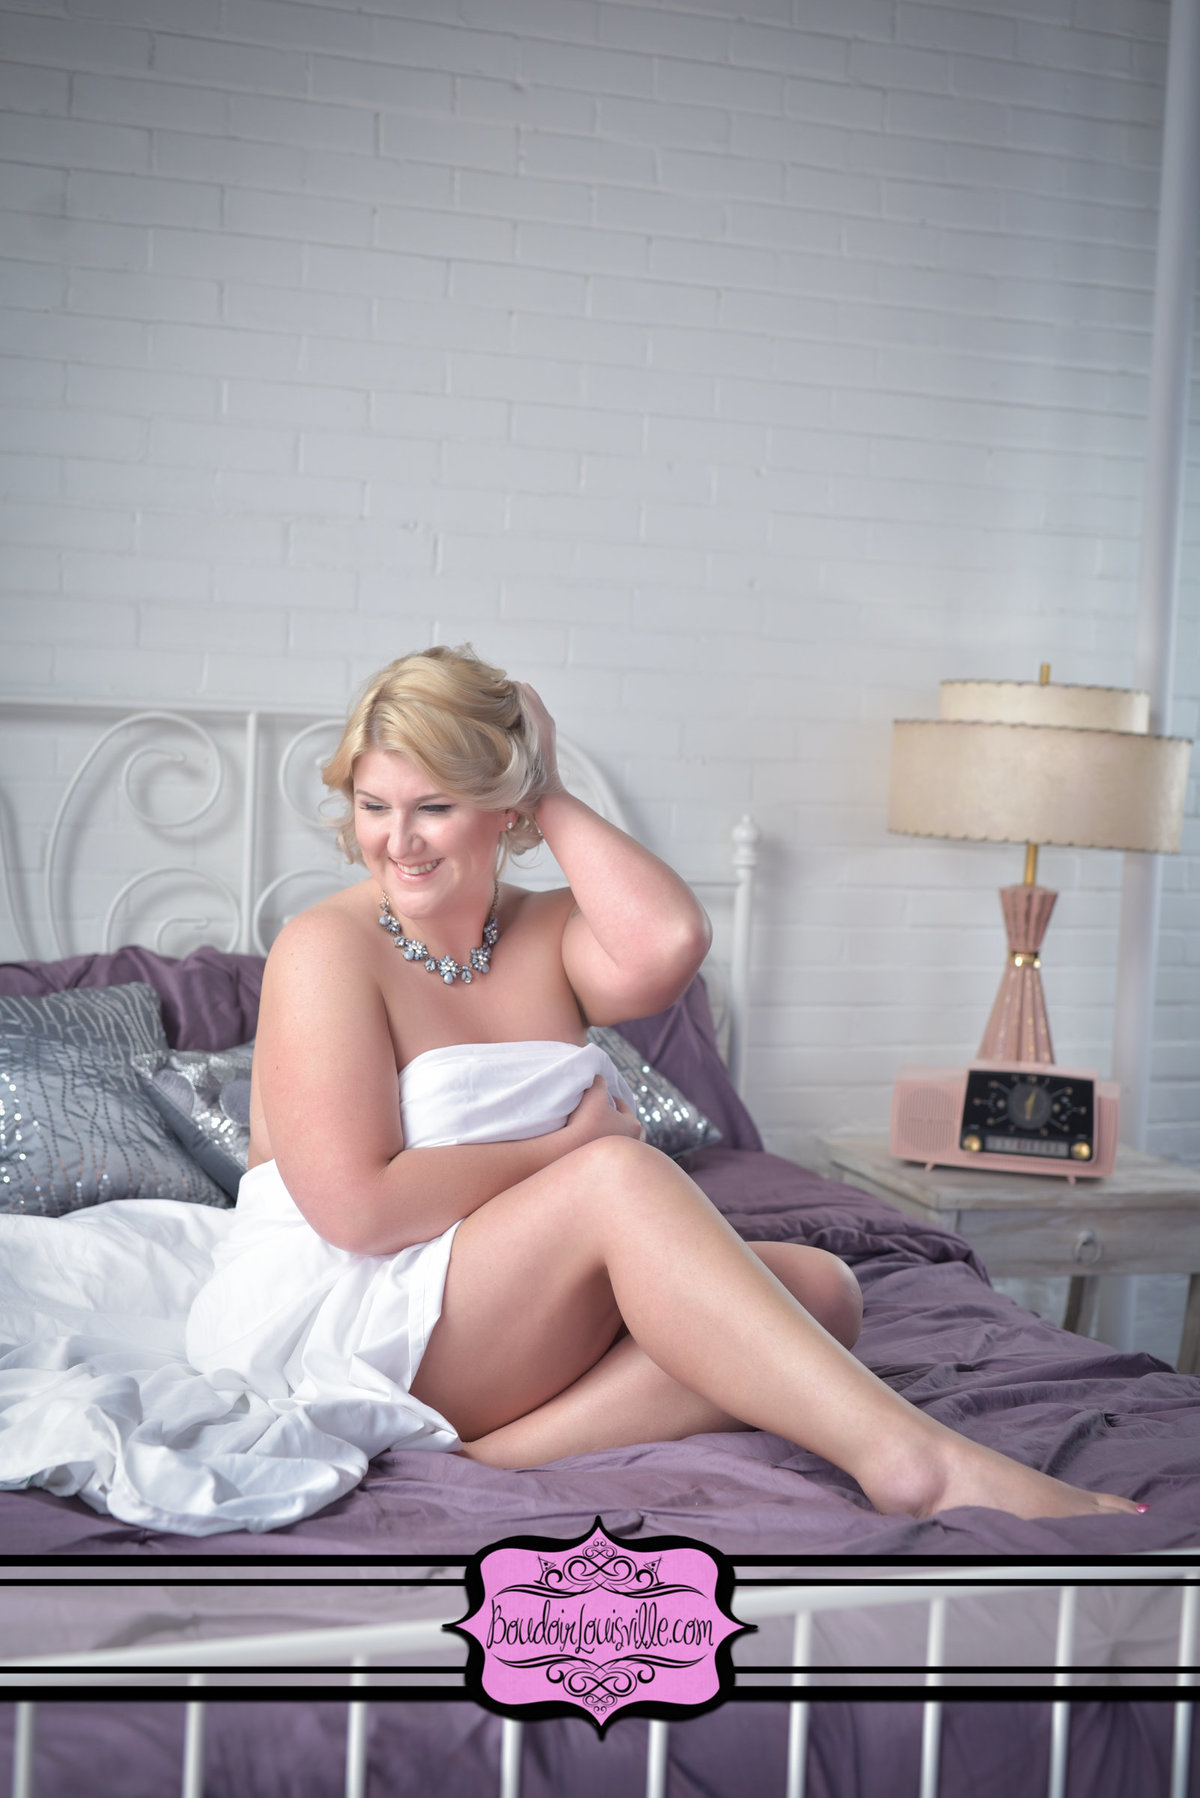 Boudoir Louisville Photo Studio-12